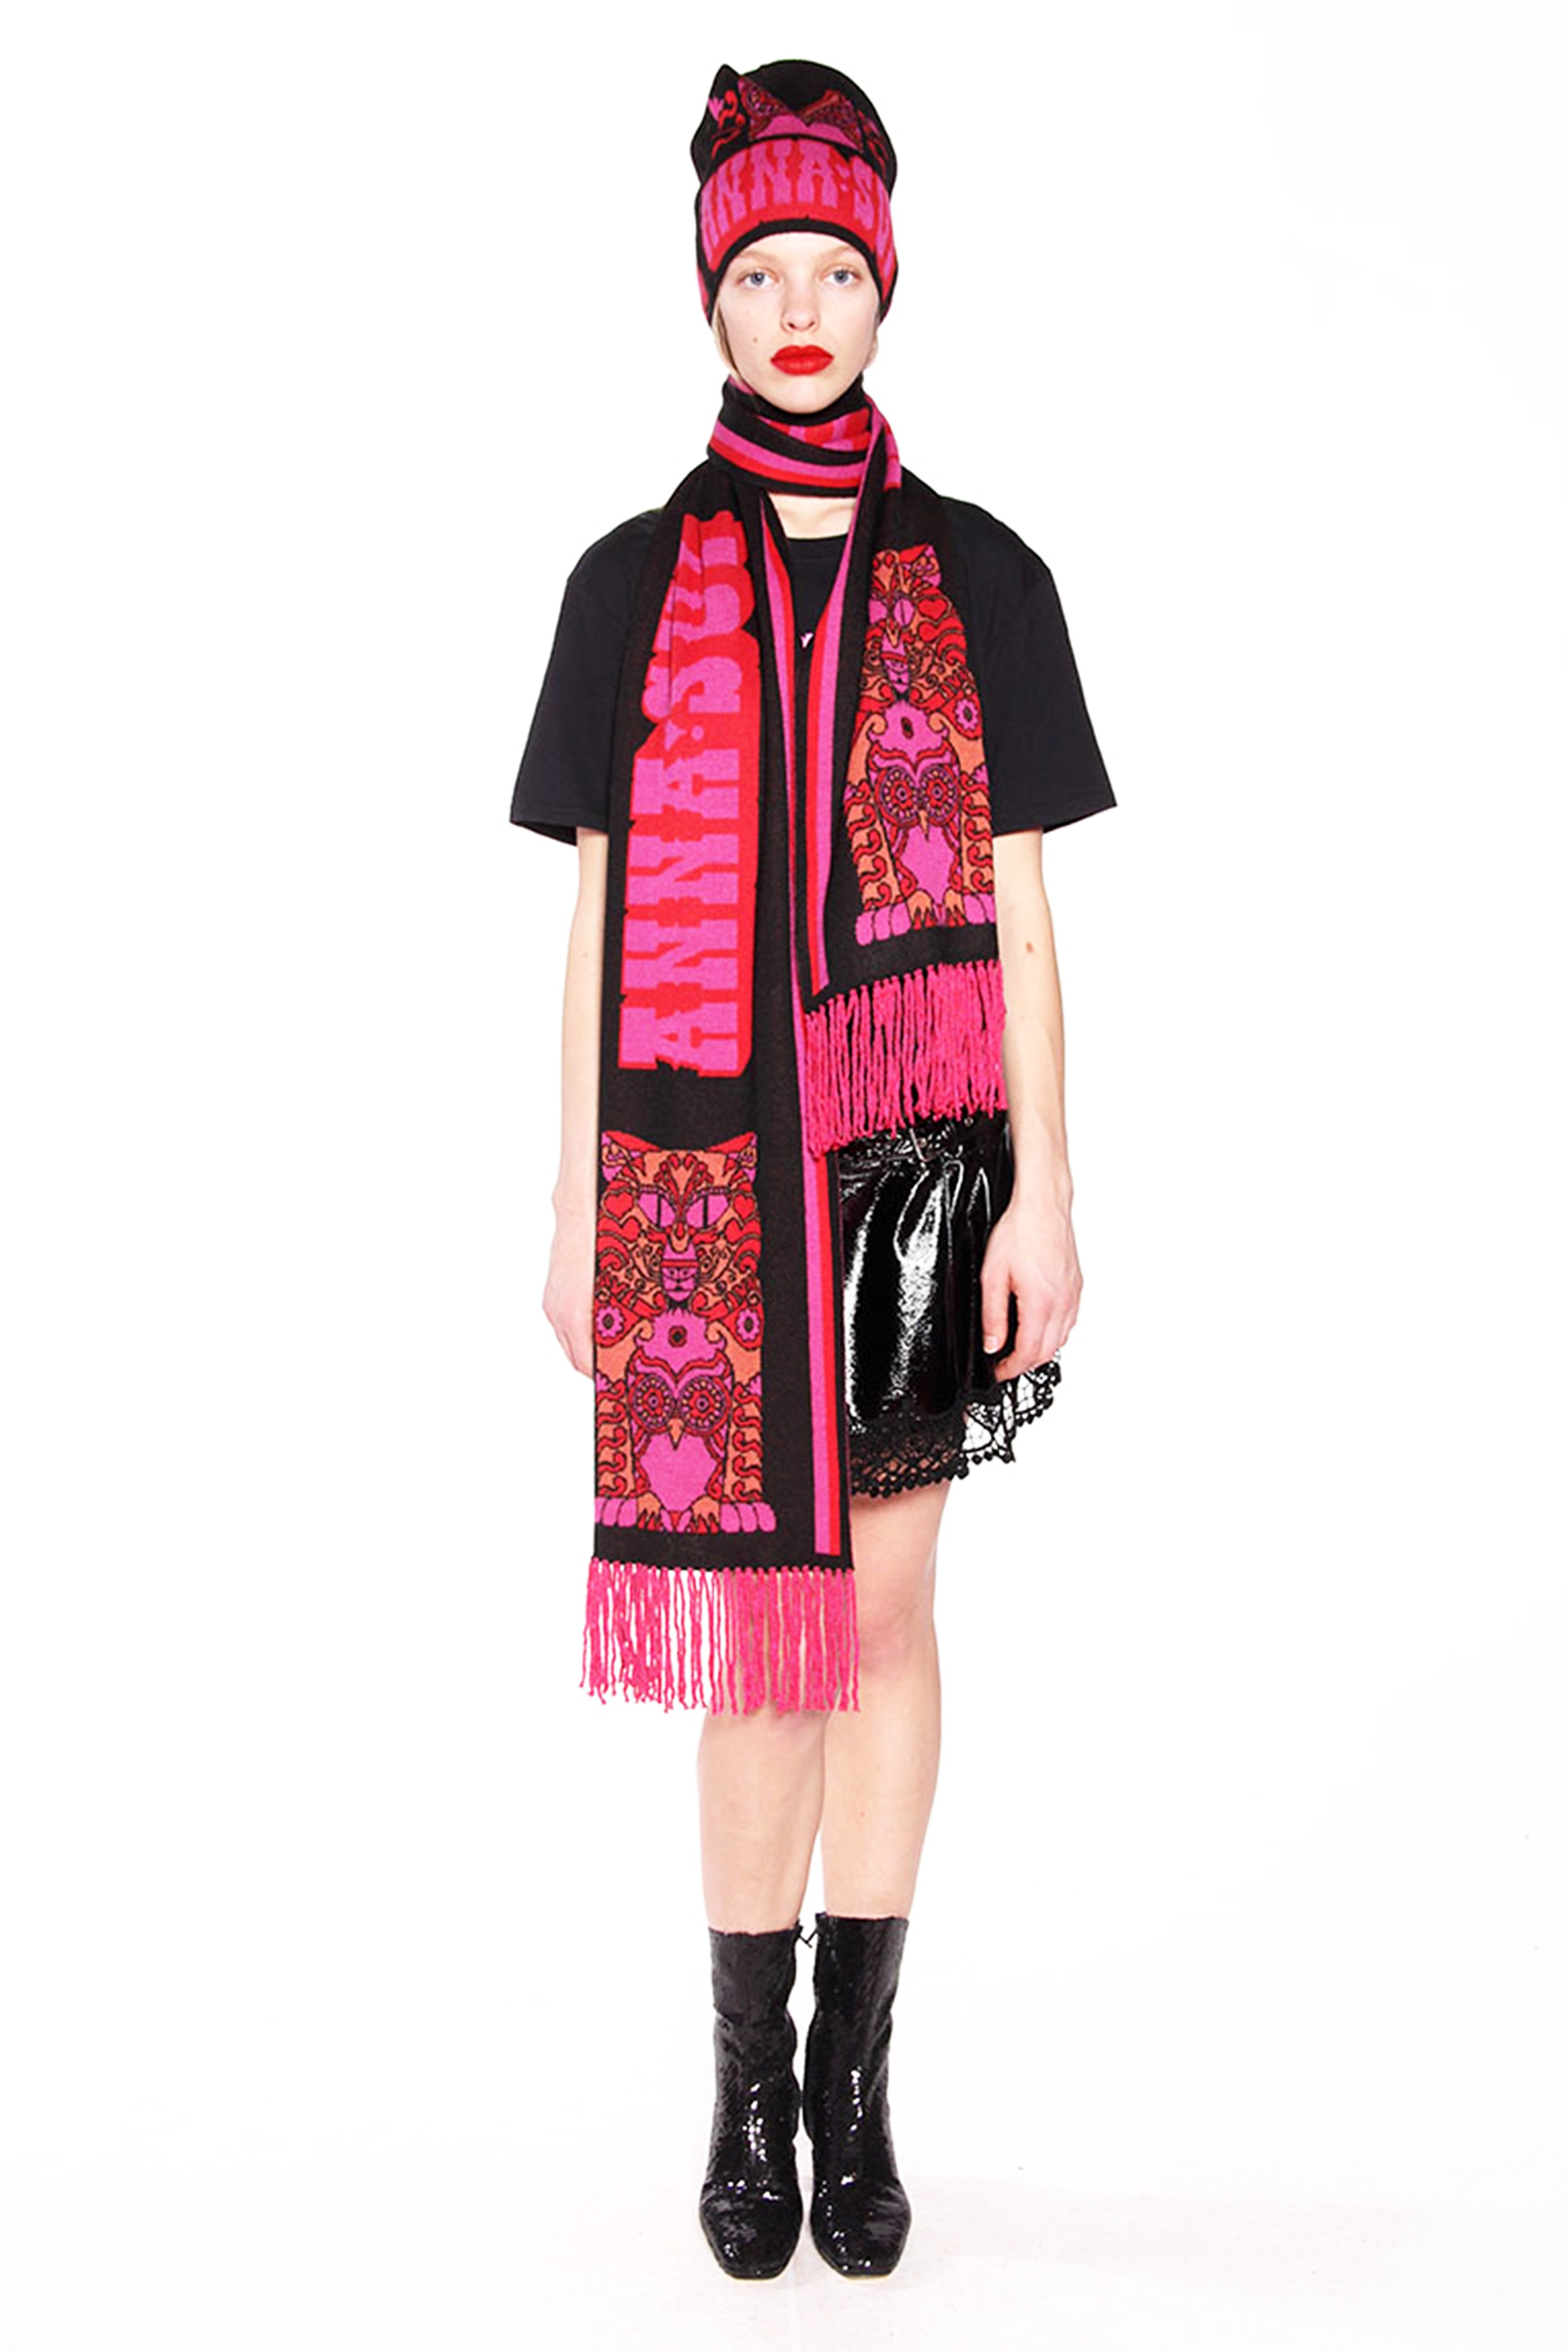 James Coviello For Anna Sui <br>Whoo's That Pussycat? Beanie</br>